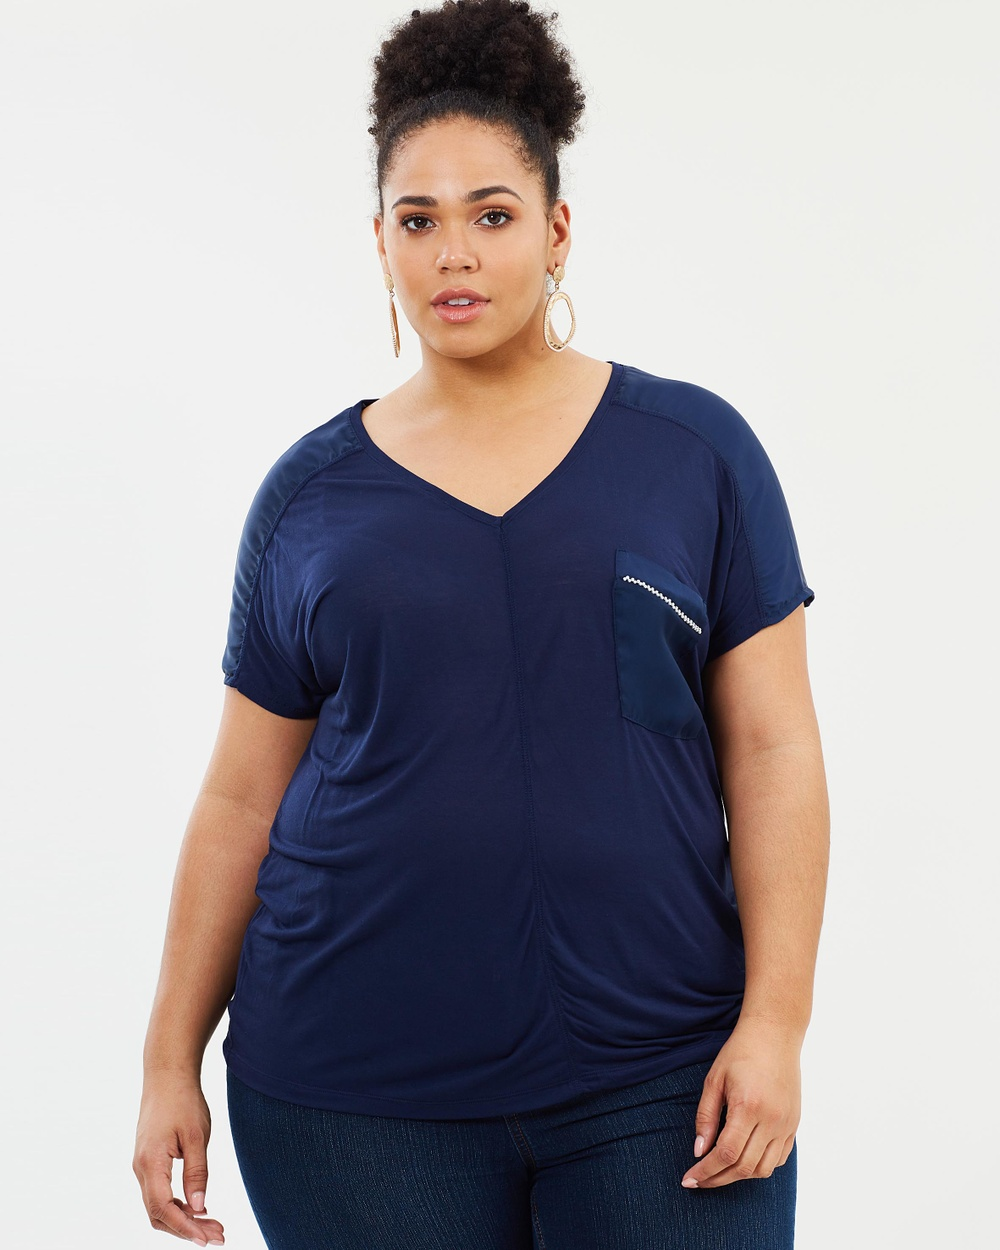 EVANS Satin Pocket Tee Tops Navy Blue Satin Pocket Tee